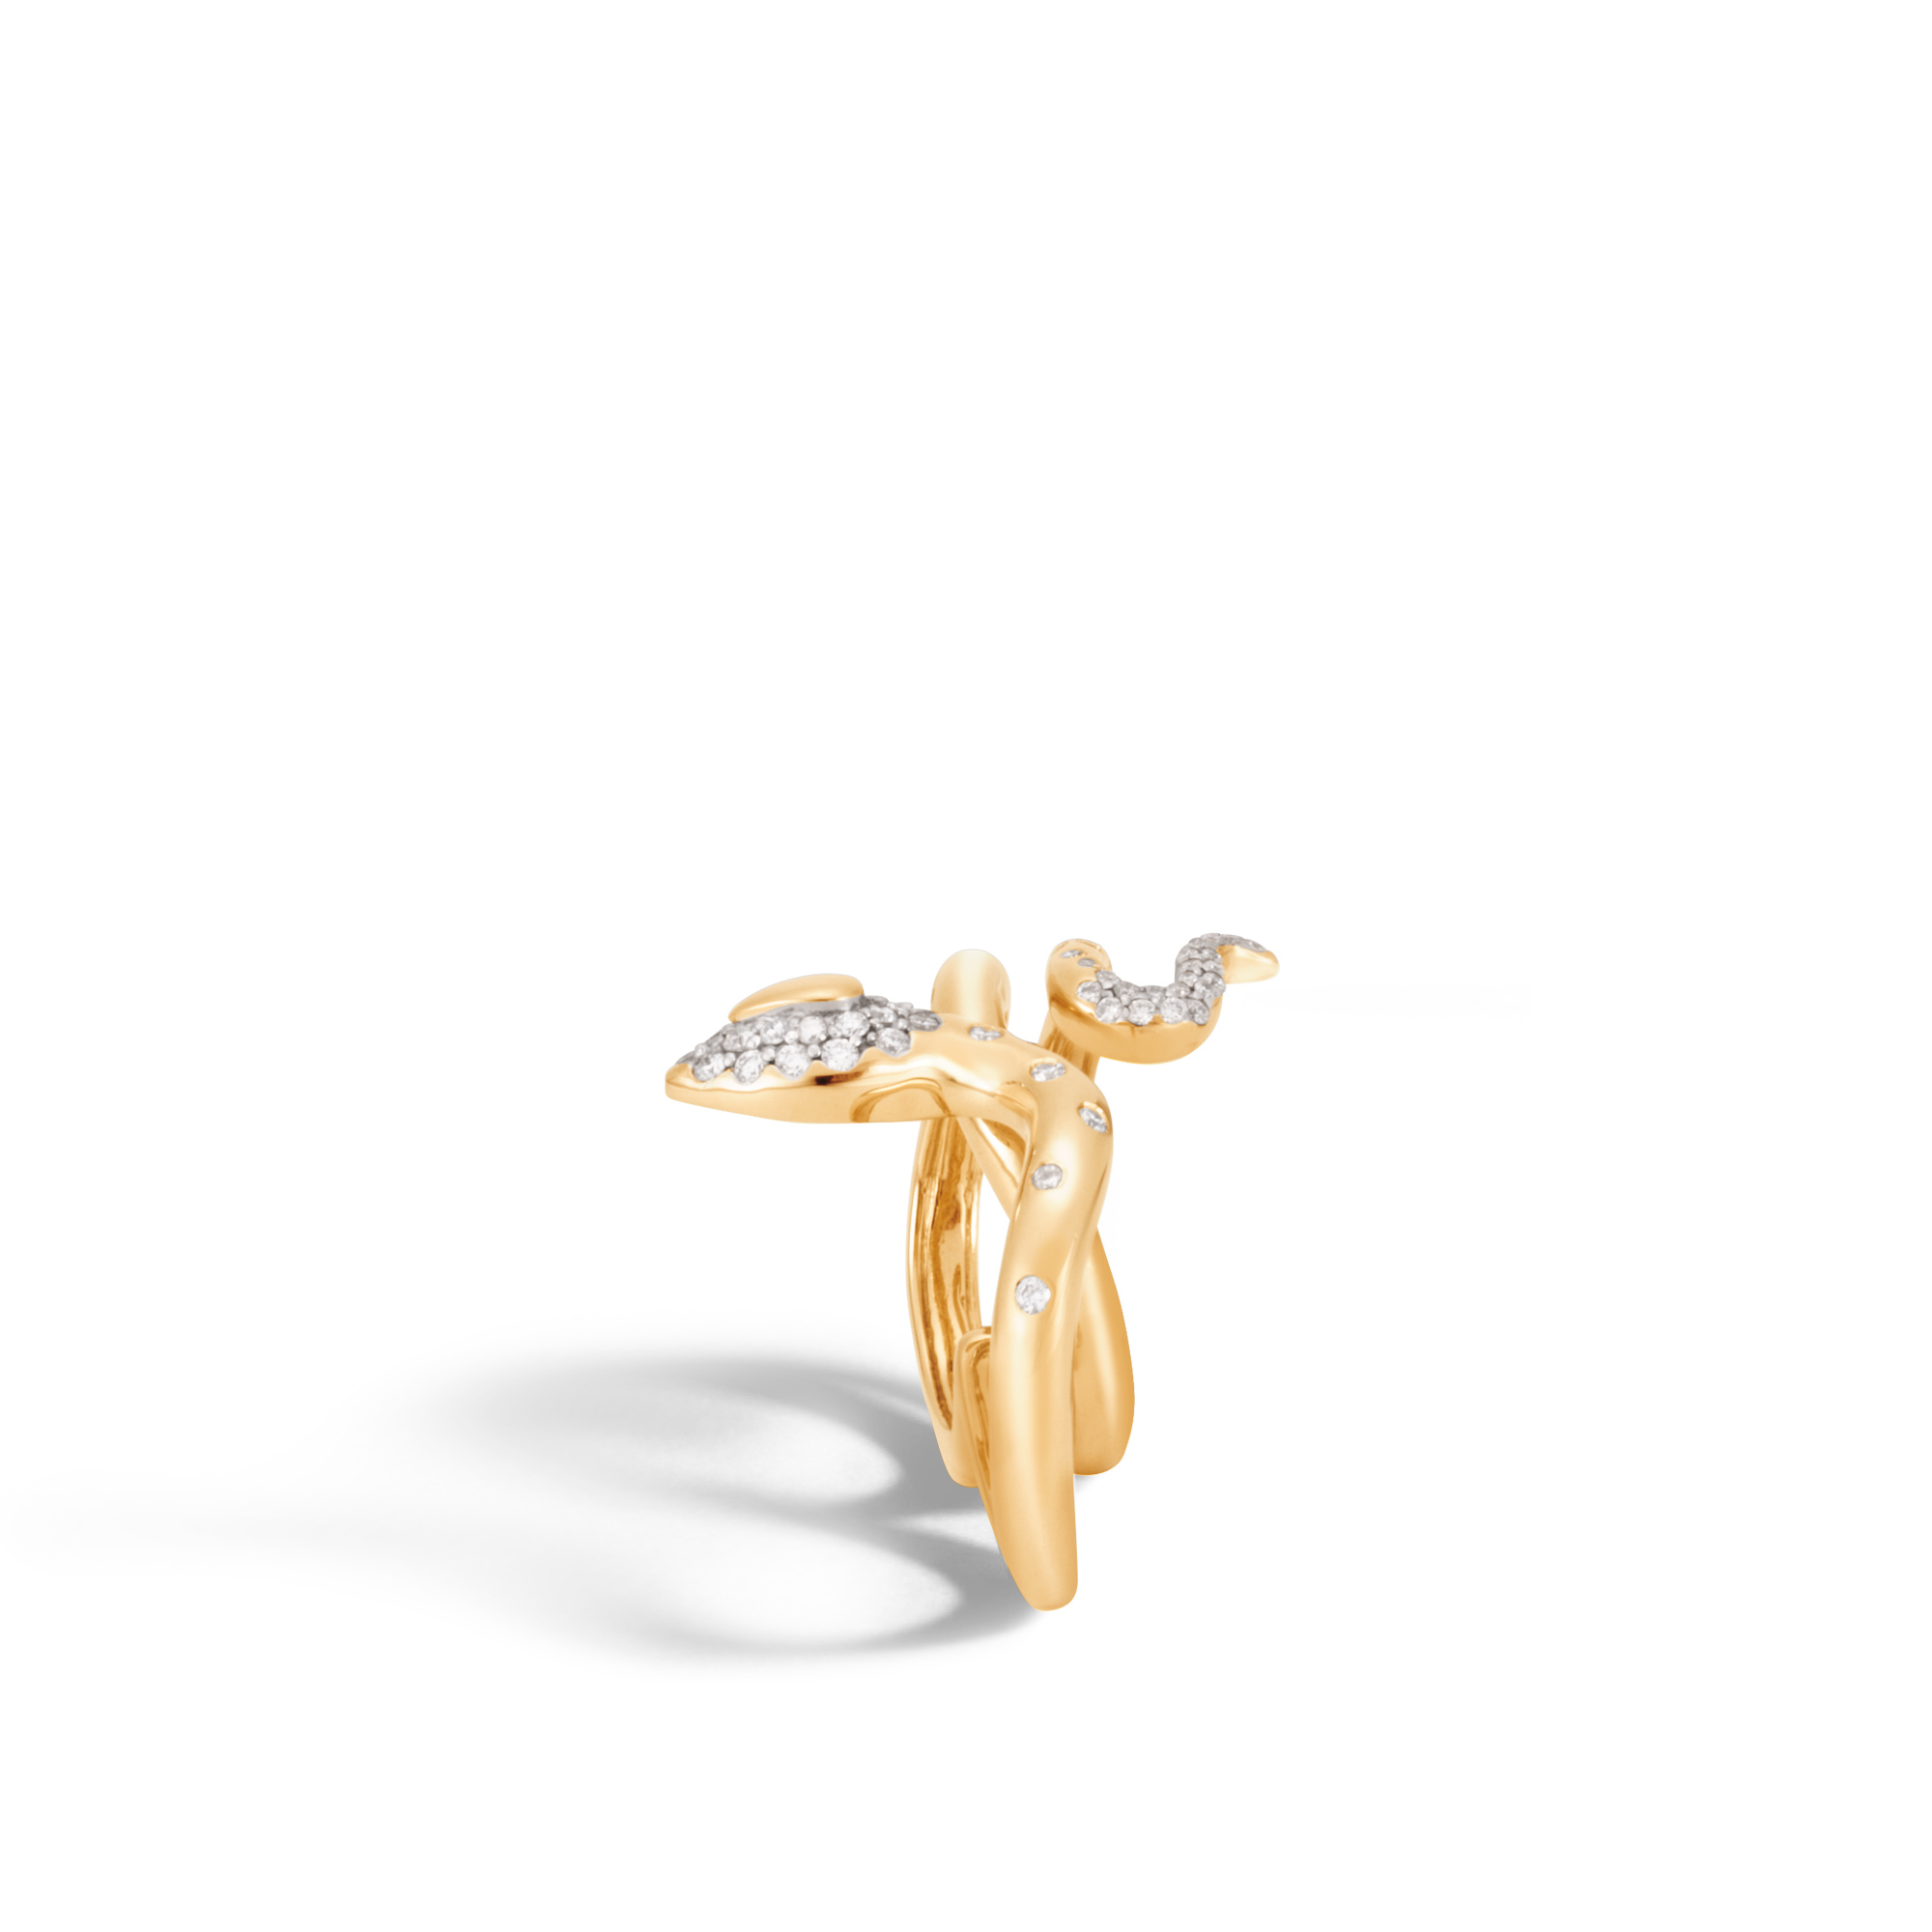 Legends Cobra Two Fingers Ring in 18K Gold with Diamonds, White Diamond, large